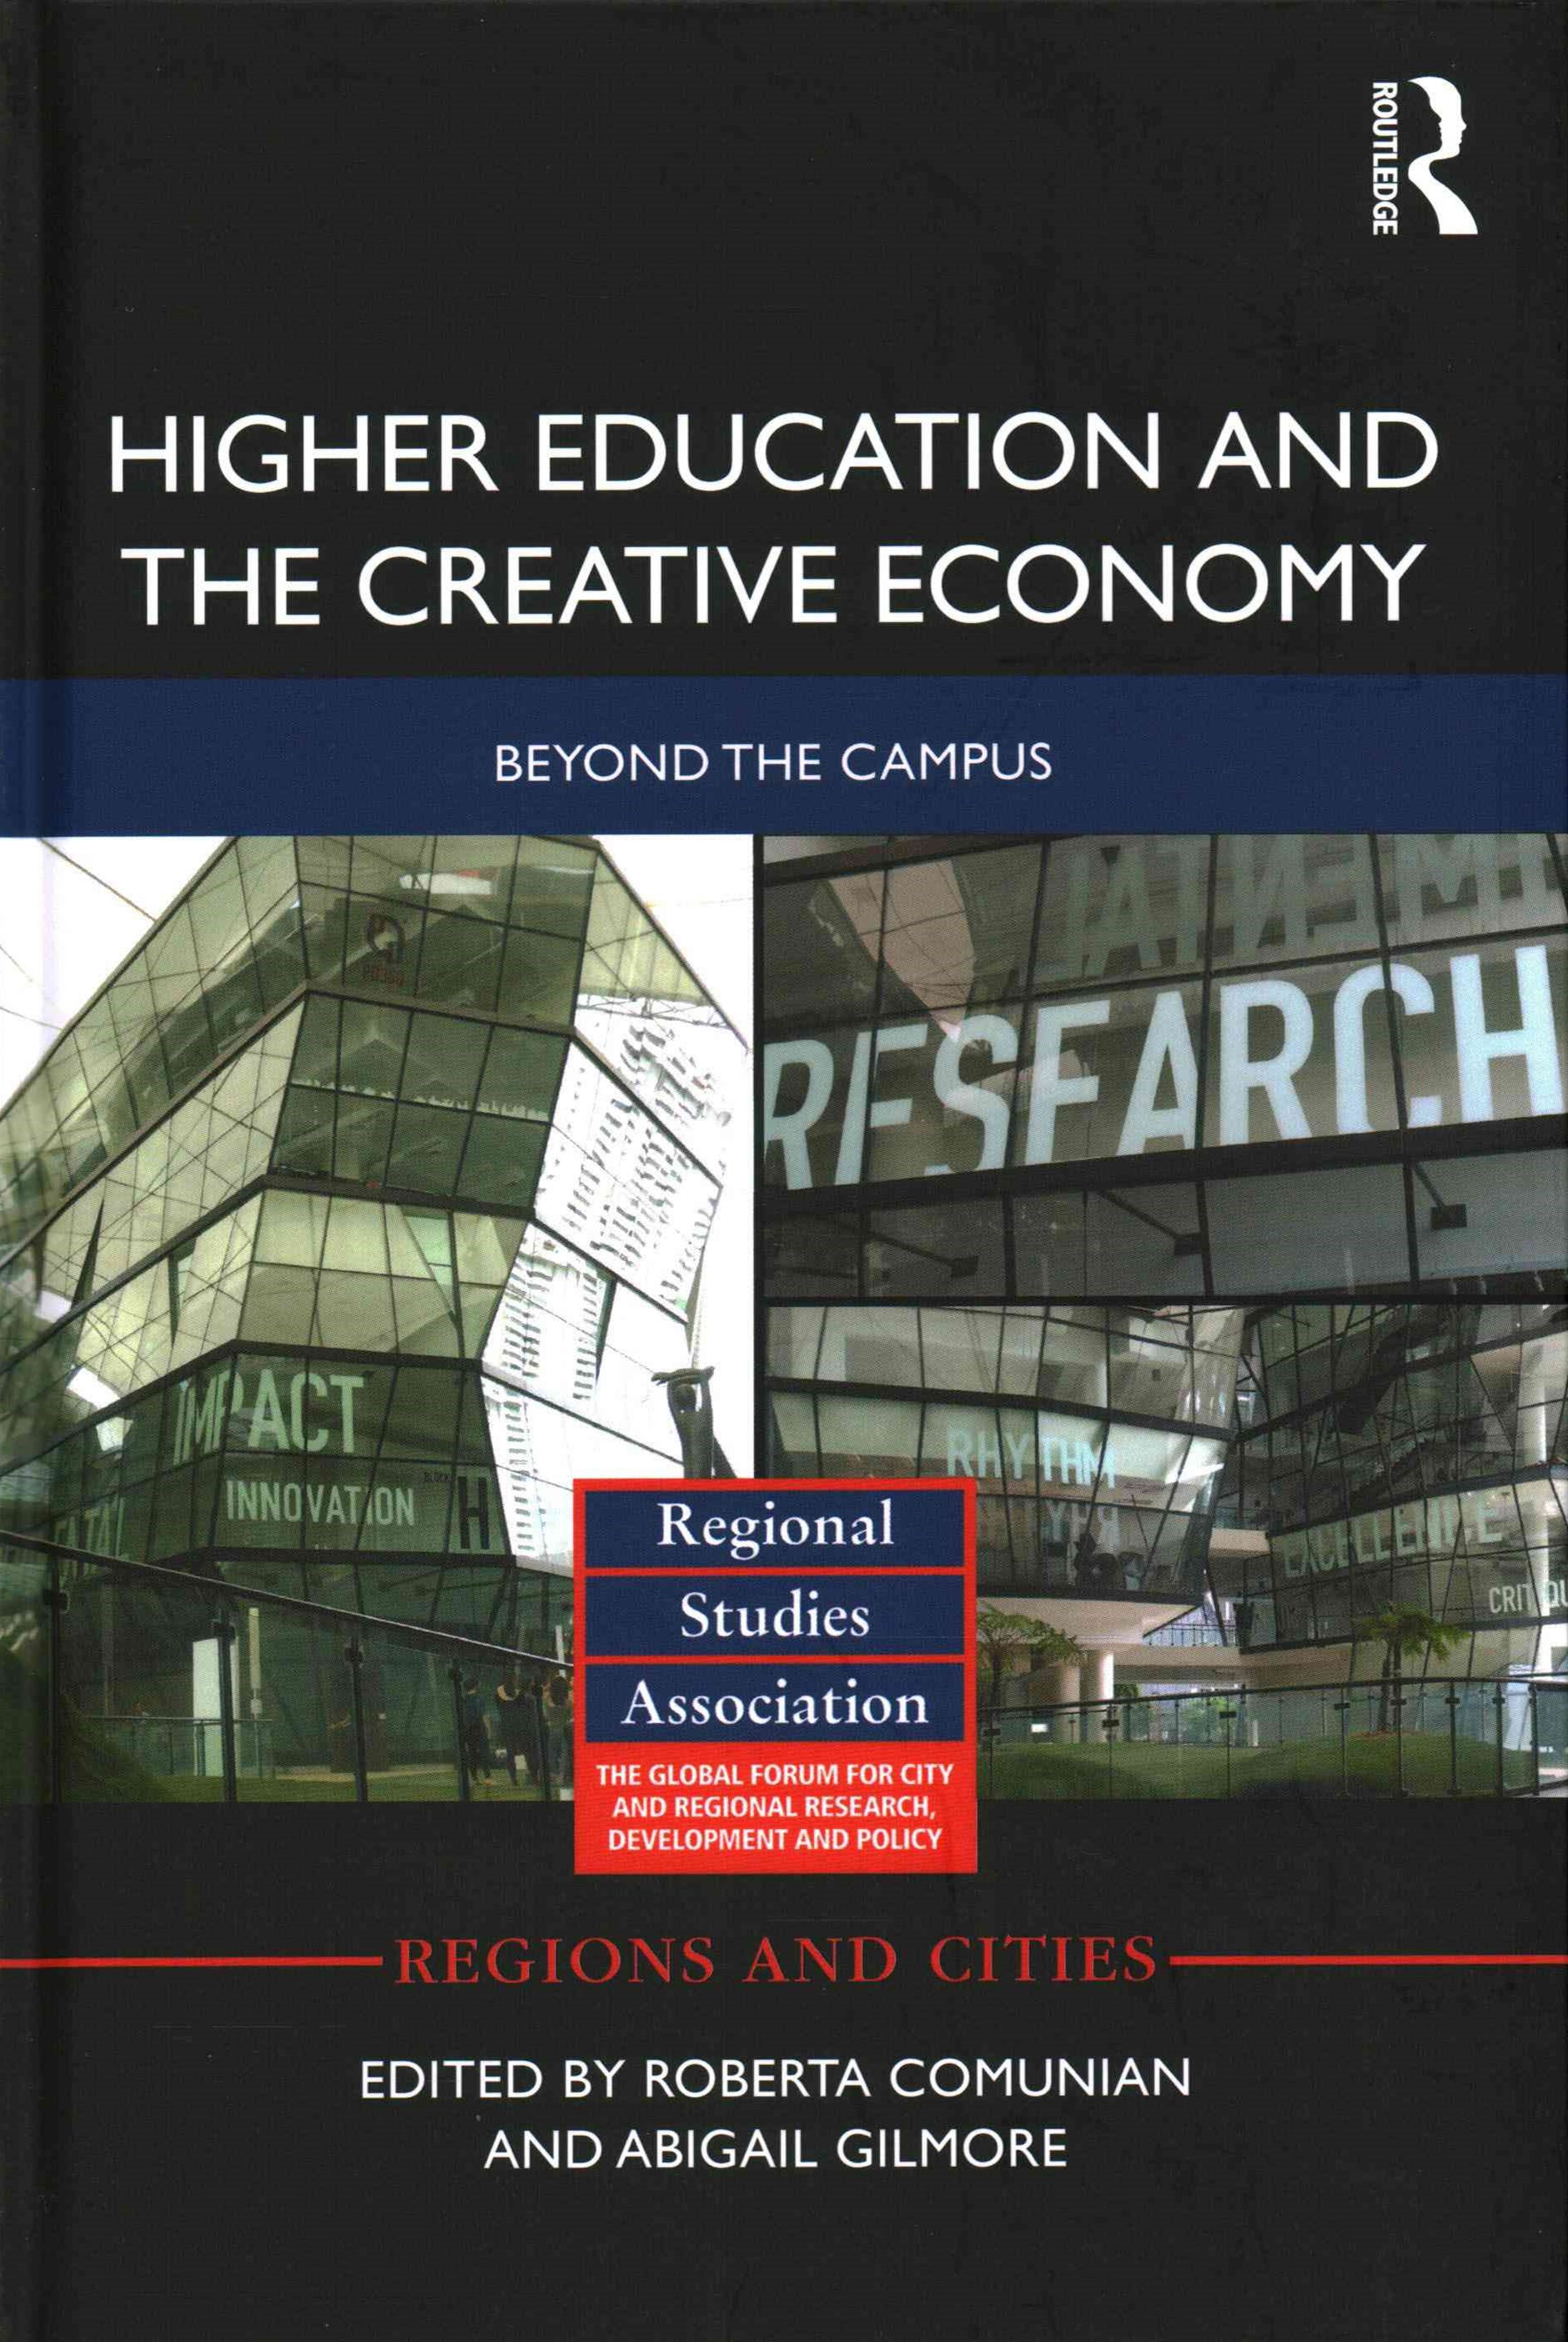 Higher Education and the Creative Economy